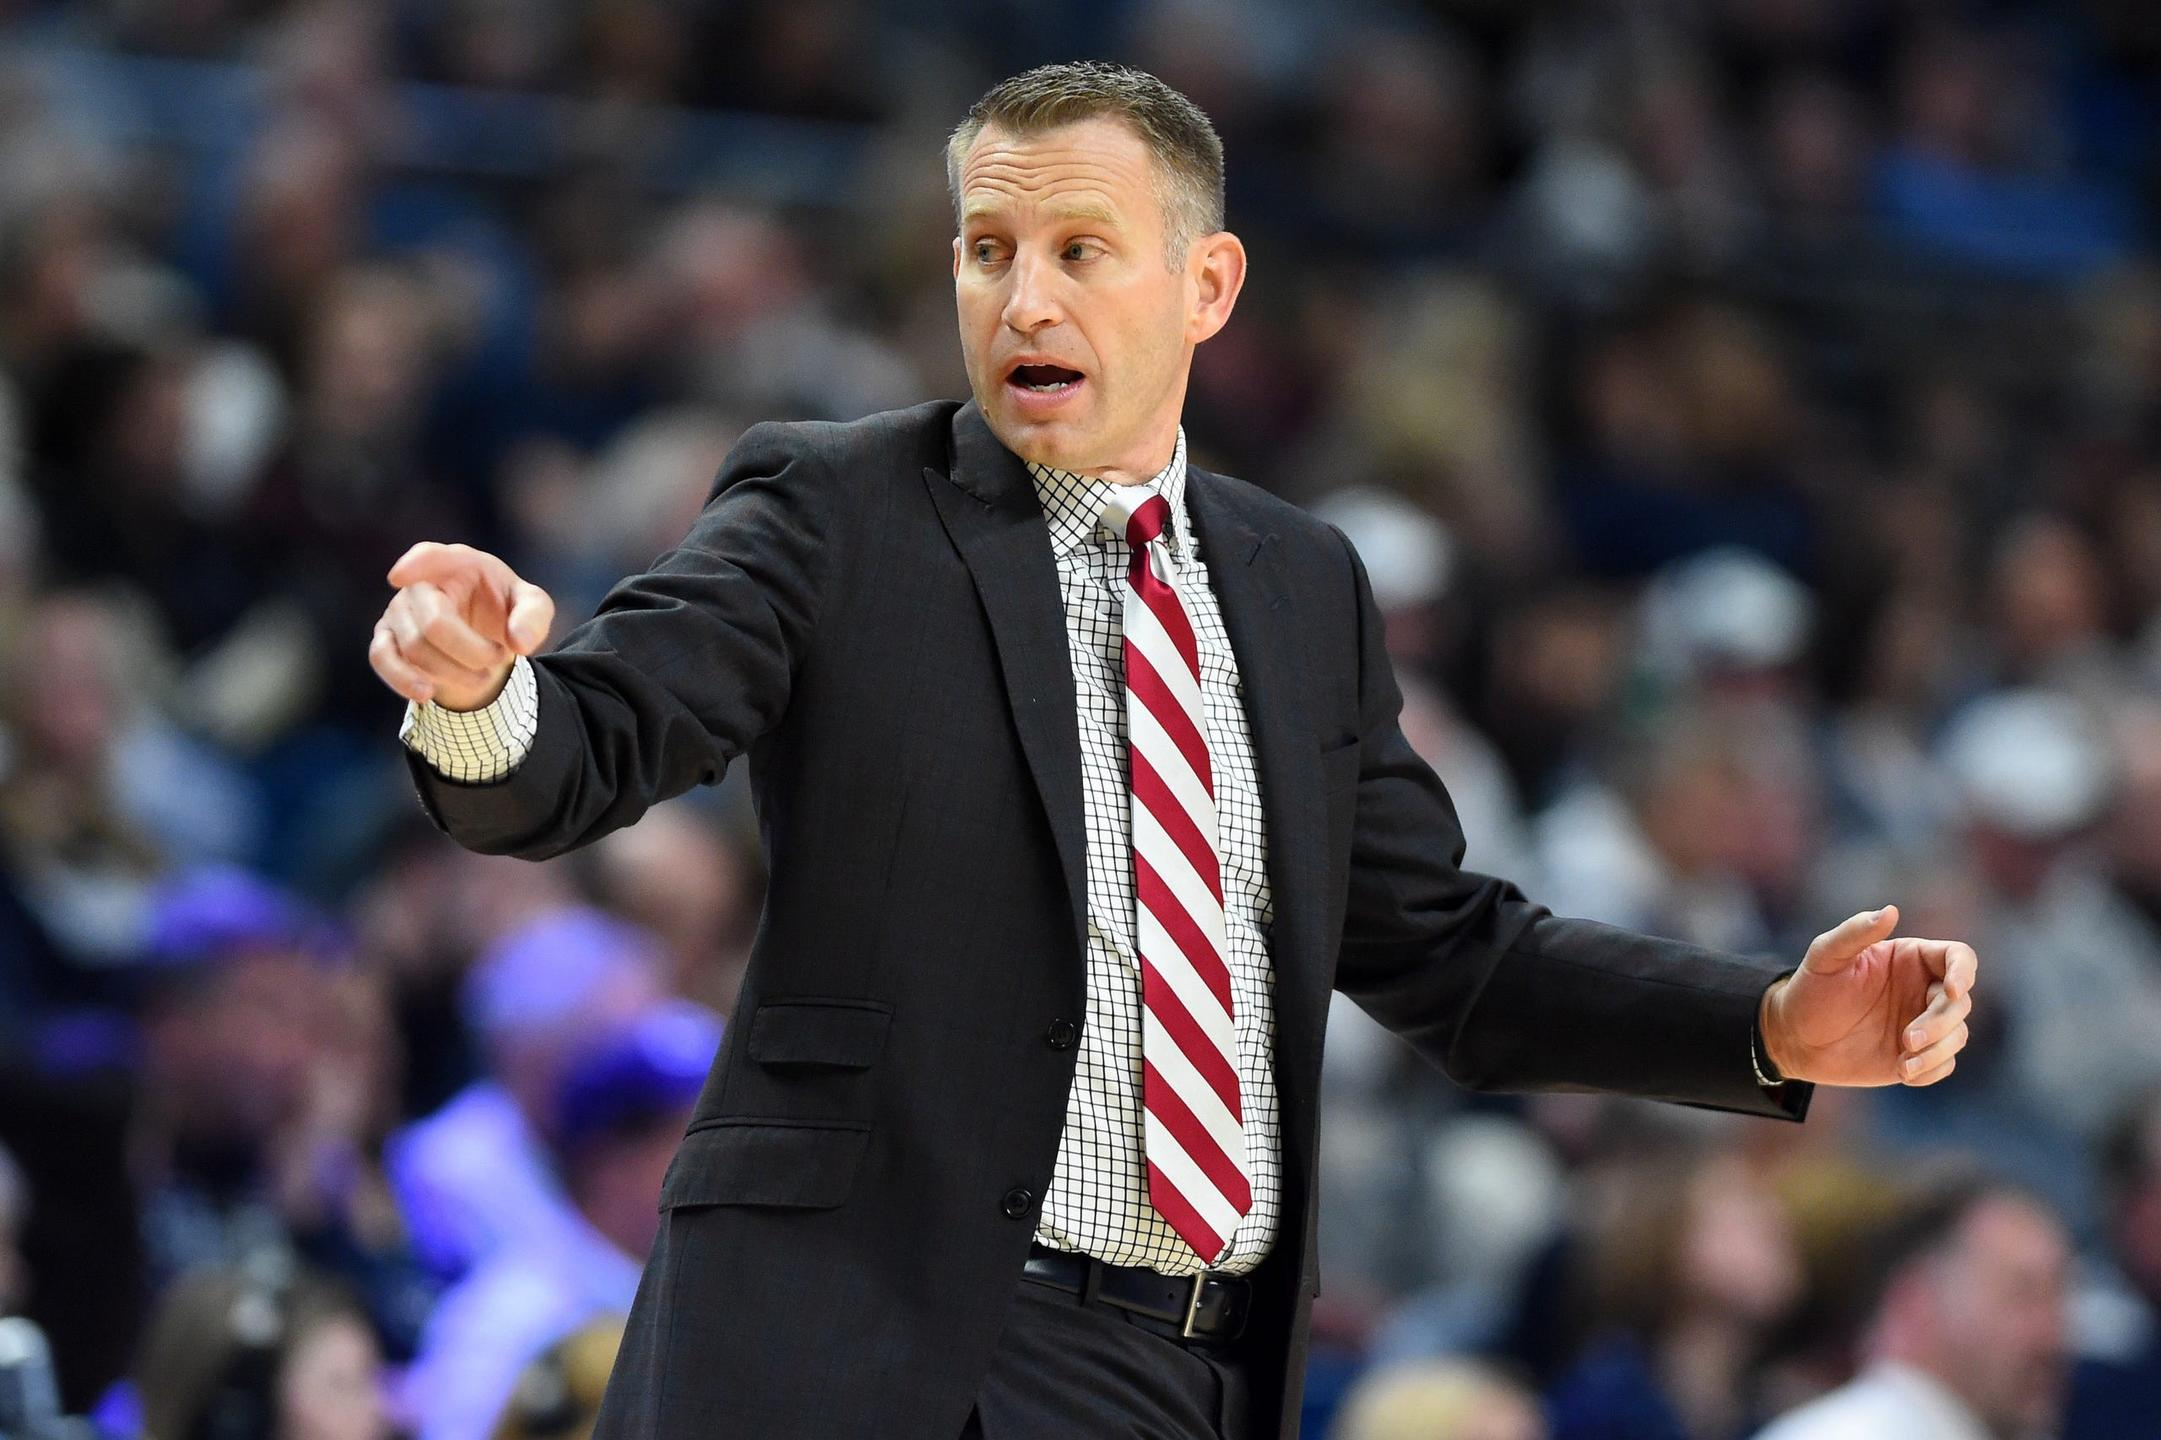 University of Alabama Men's Basketball Coach Nate Oats